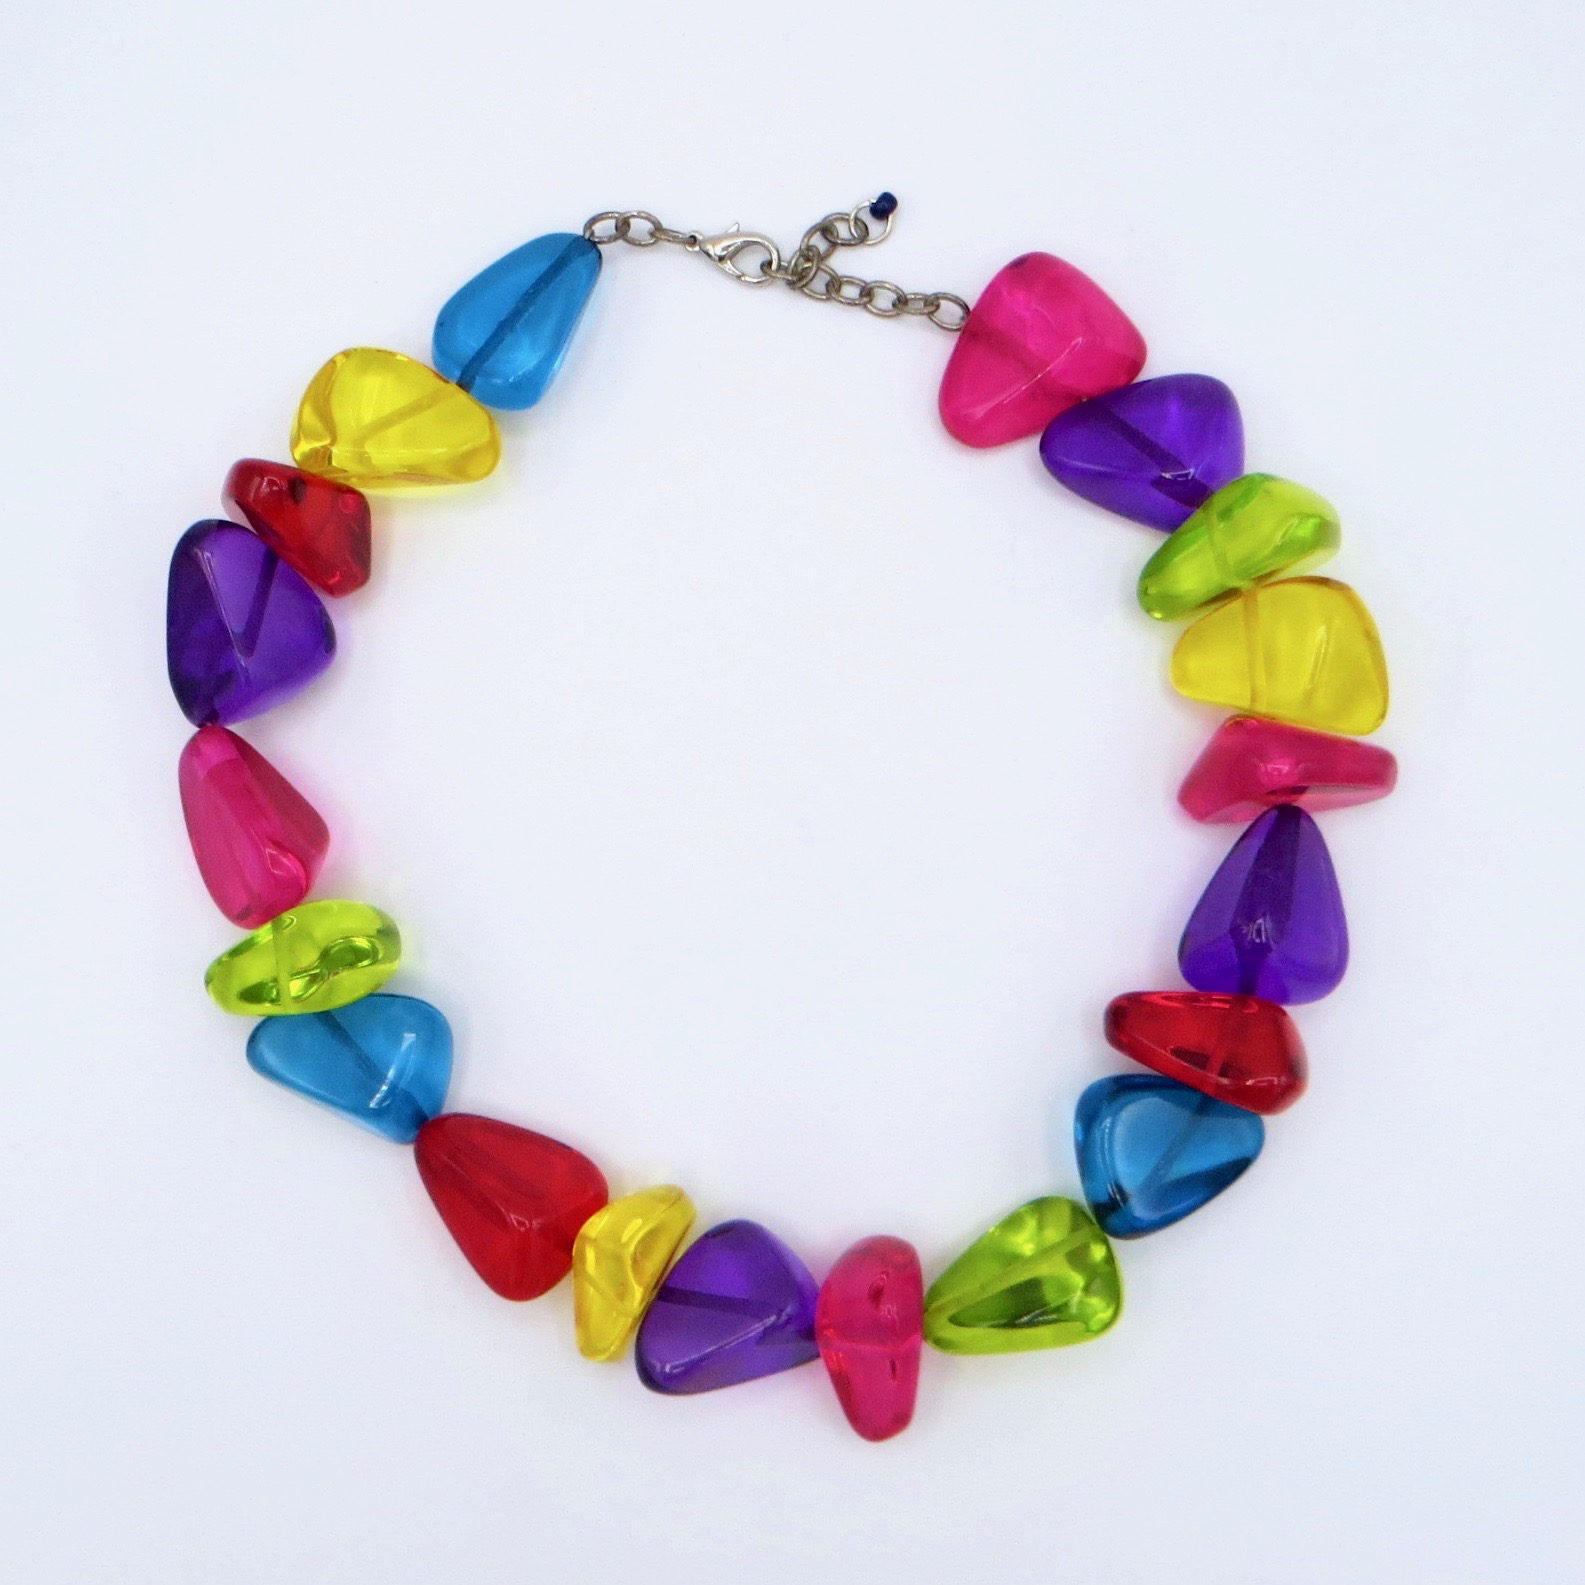 Translucent Sobral Necklace